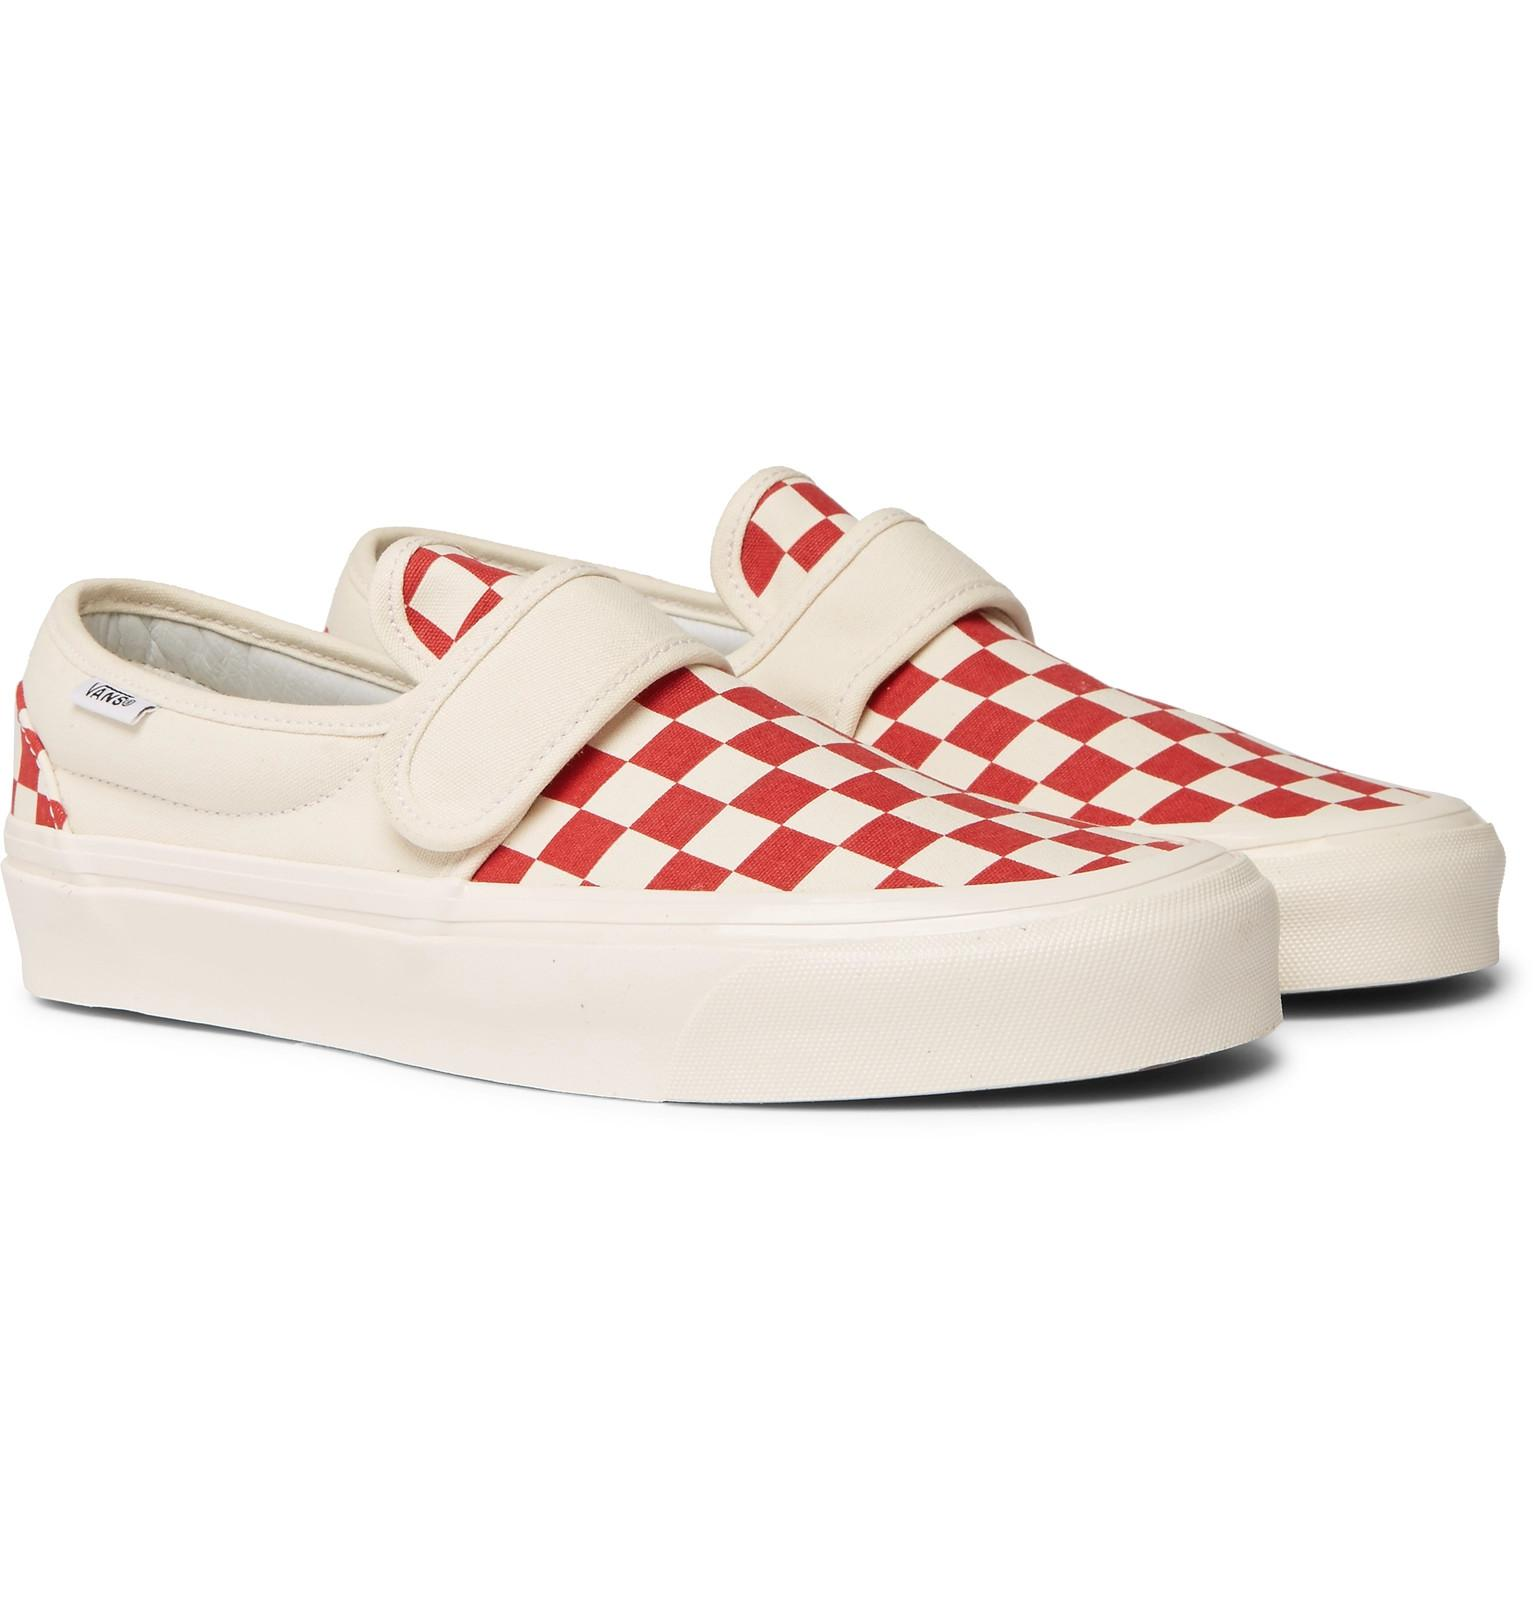 Vans Anaheim Factory 47 V Dx Checkerboard Canvas Sneakers in Red for ... 3faffd6aa